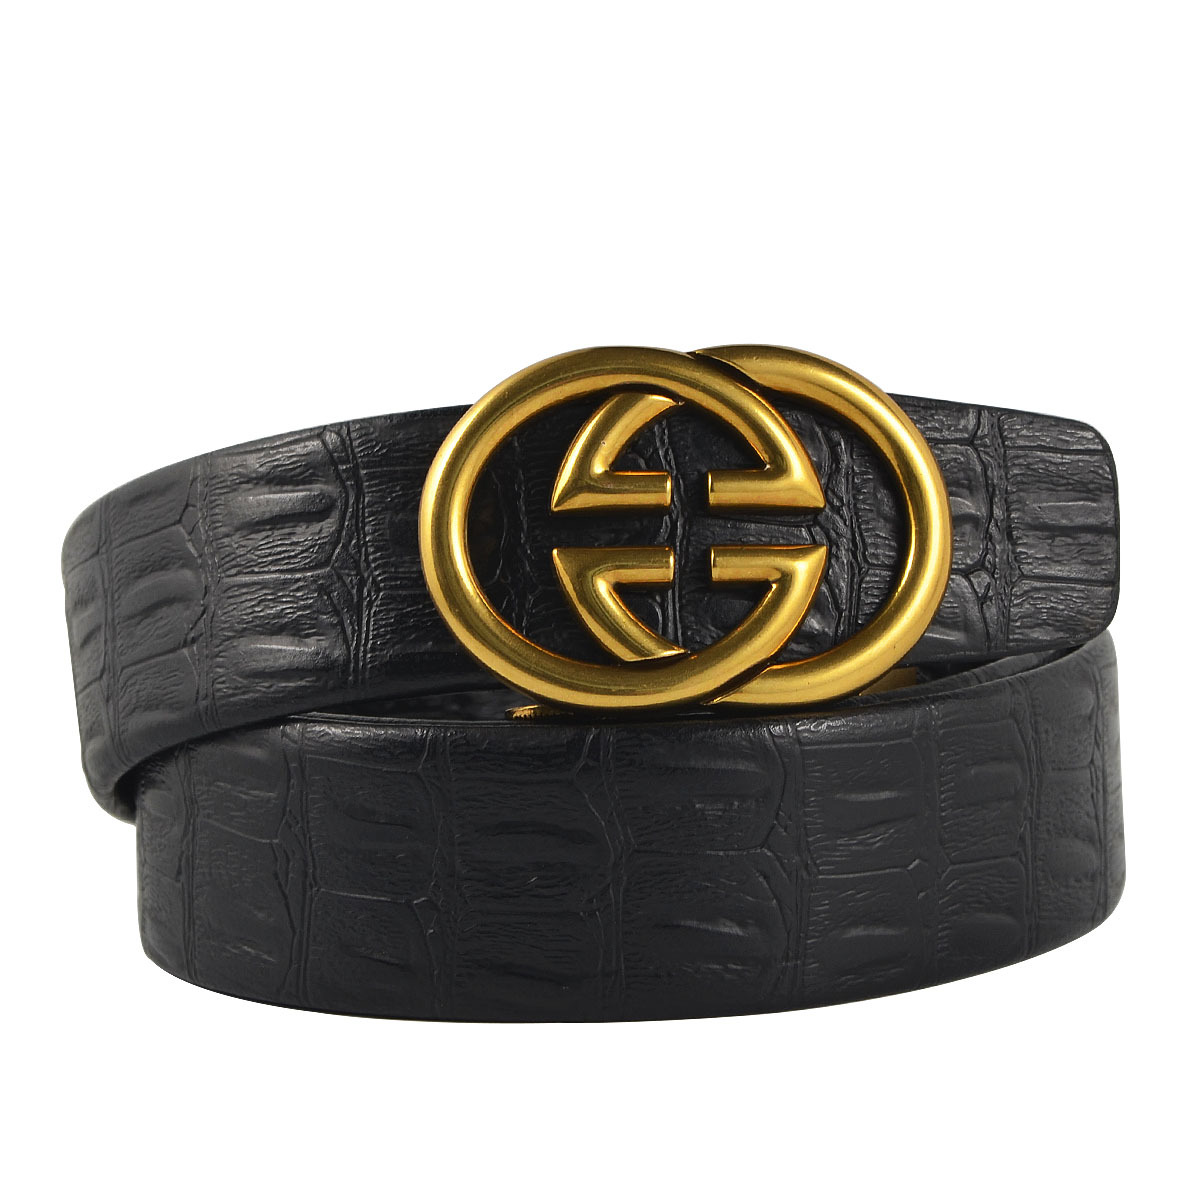 Guravio Luxury Designer H Belts Male Women Genuine Real Leather retro Buckle Strap